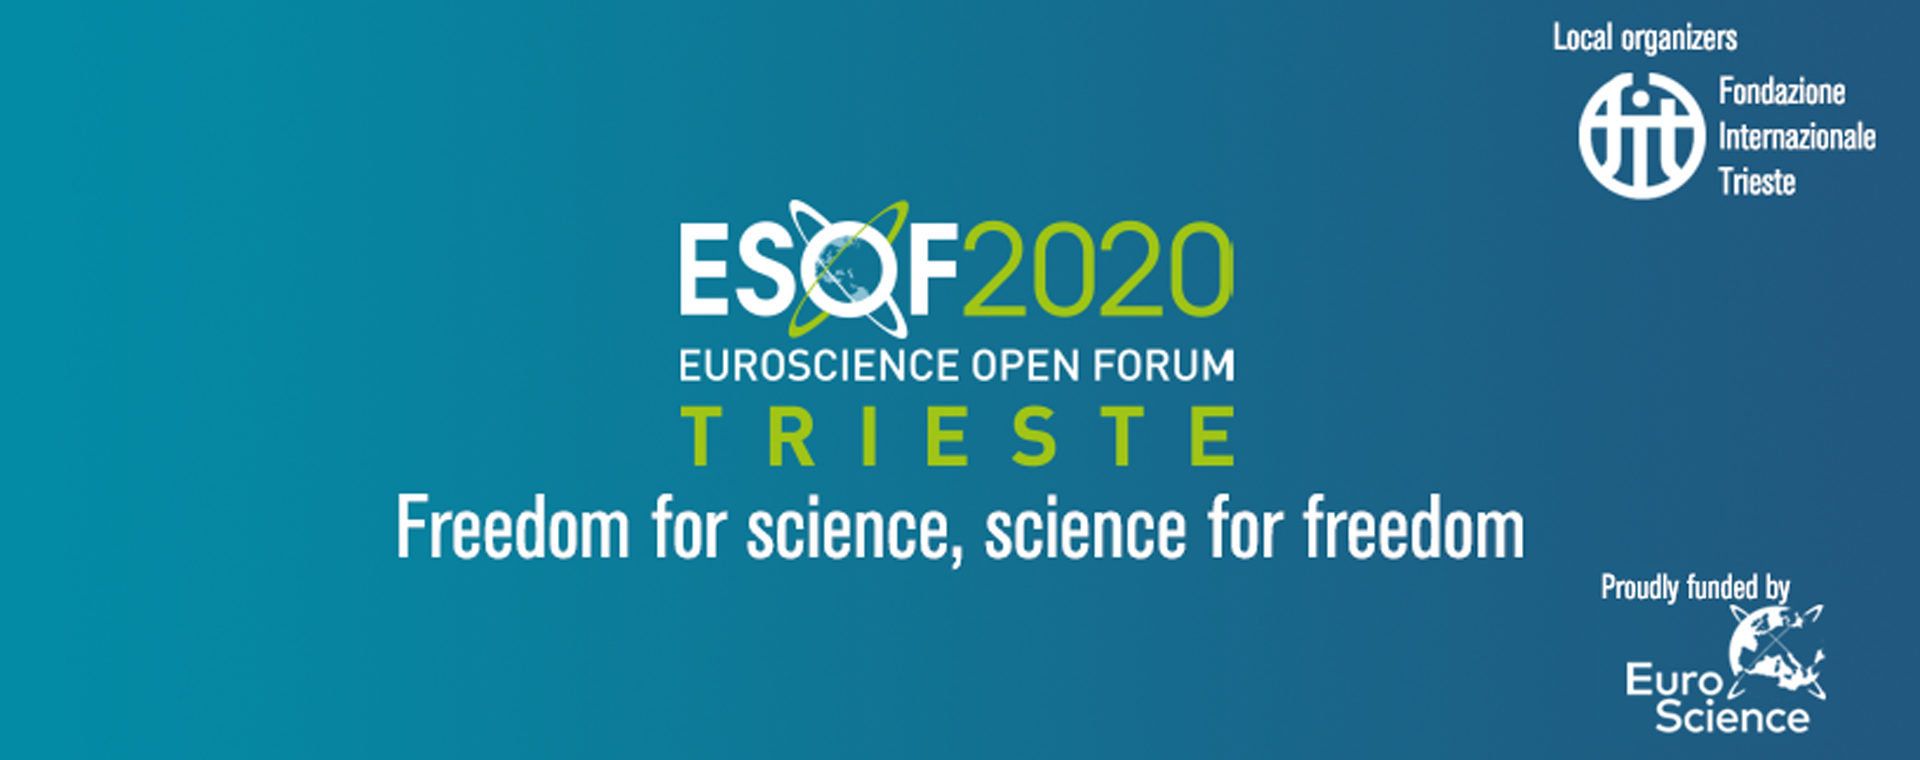 Area Science Park a Esof 2020